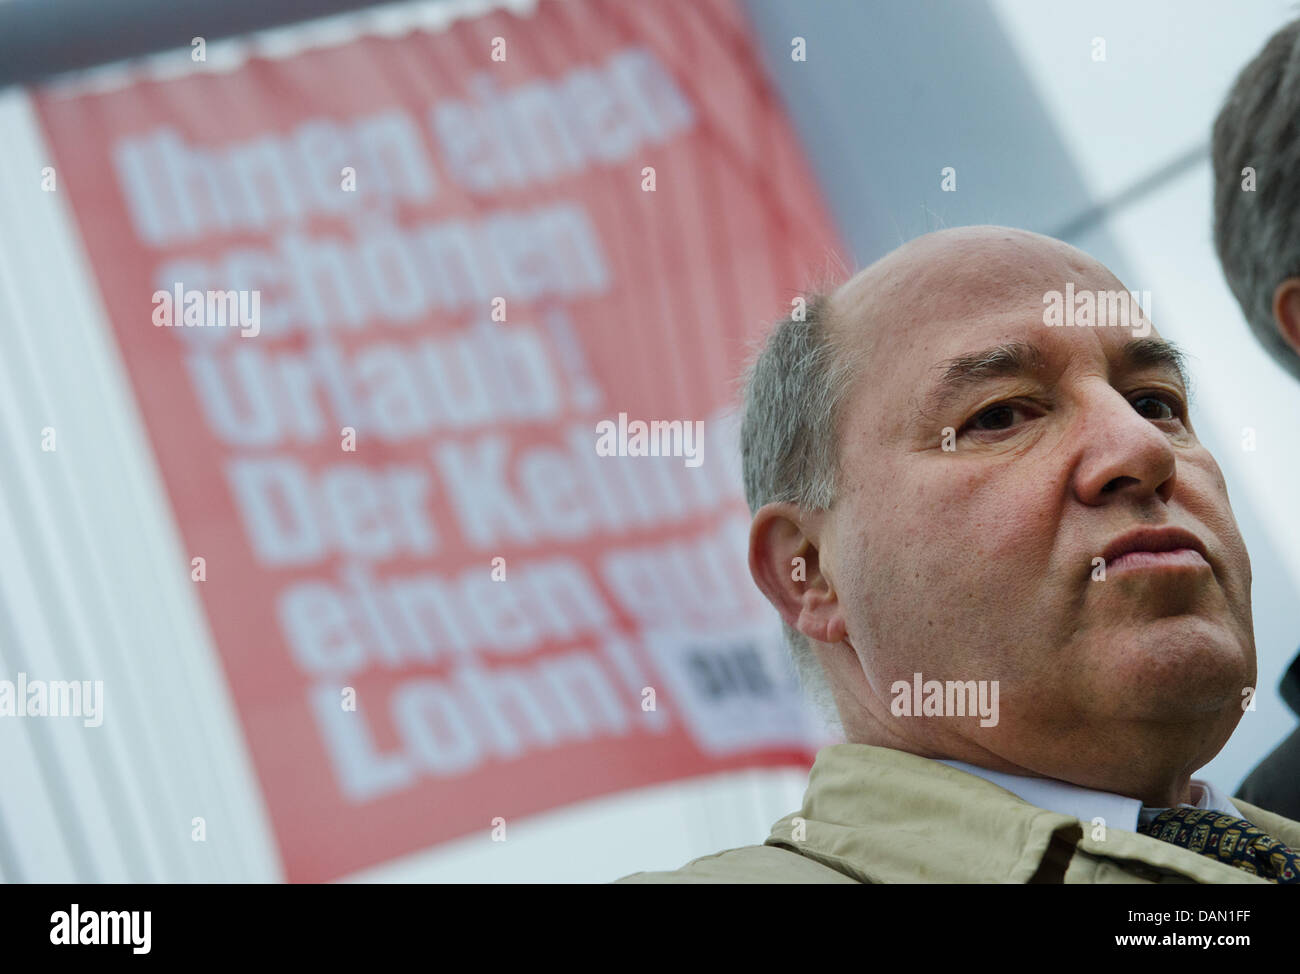 Chairman of parliamentary group of 'Die Linke' (The Left) party, Gregor Gysi, stands in front of a protest - Stock Image